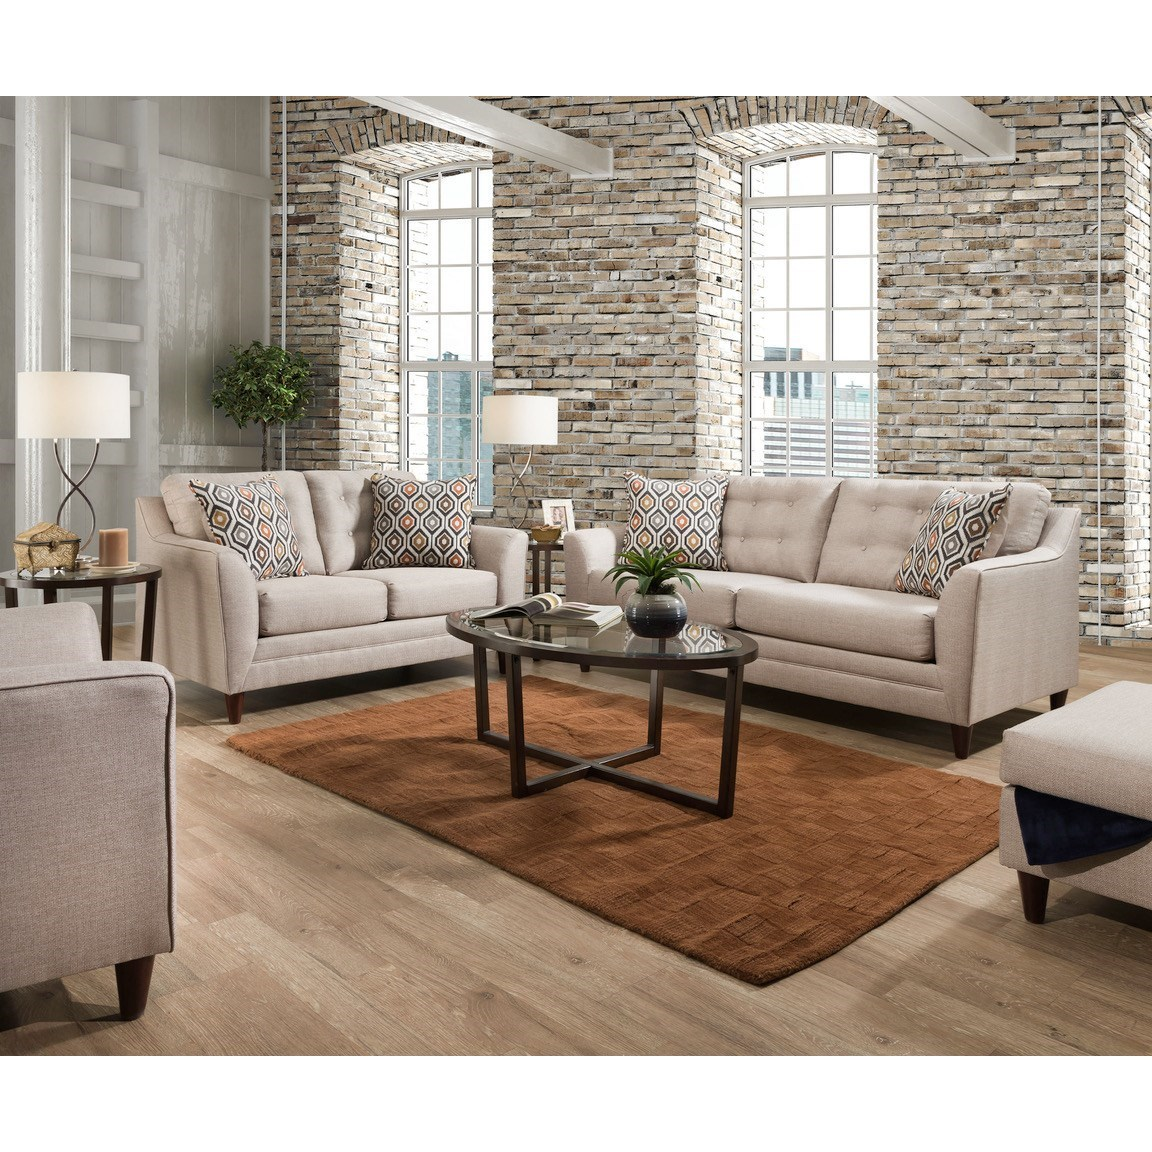 8126 Stationary Living Room Group by United Furniture Industries at Dream Home Interiors